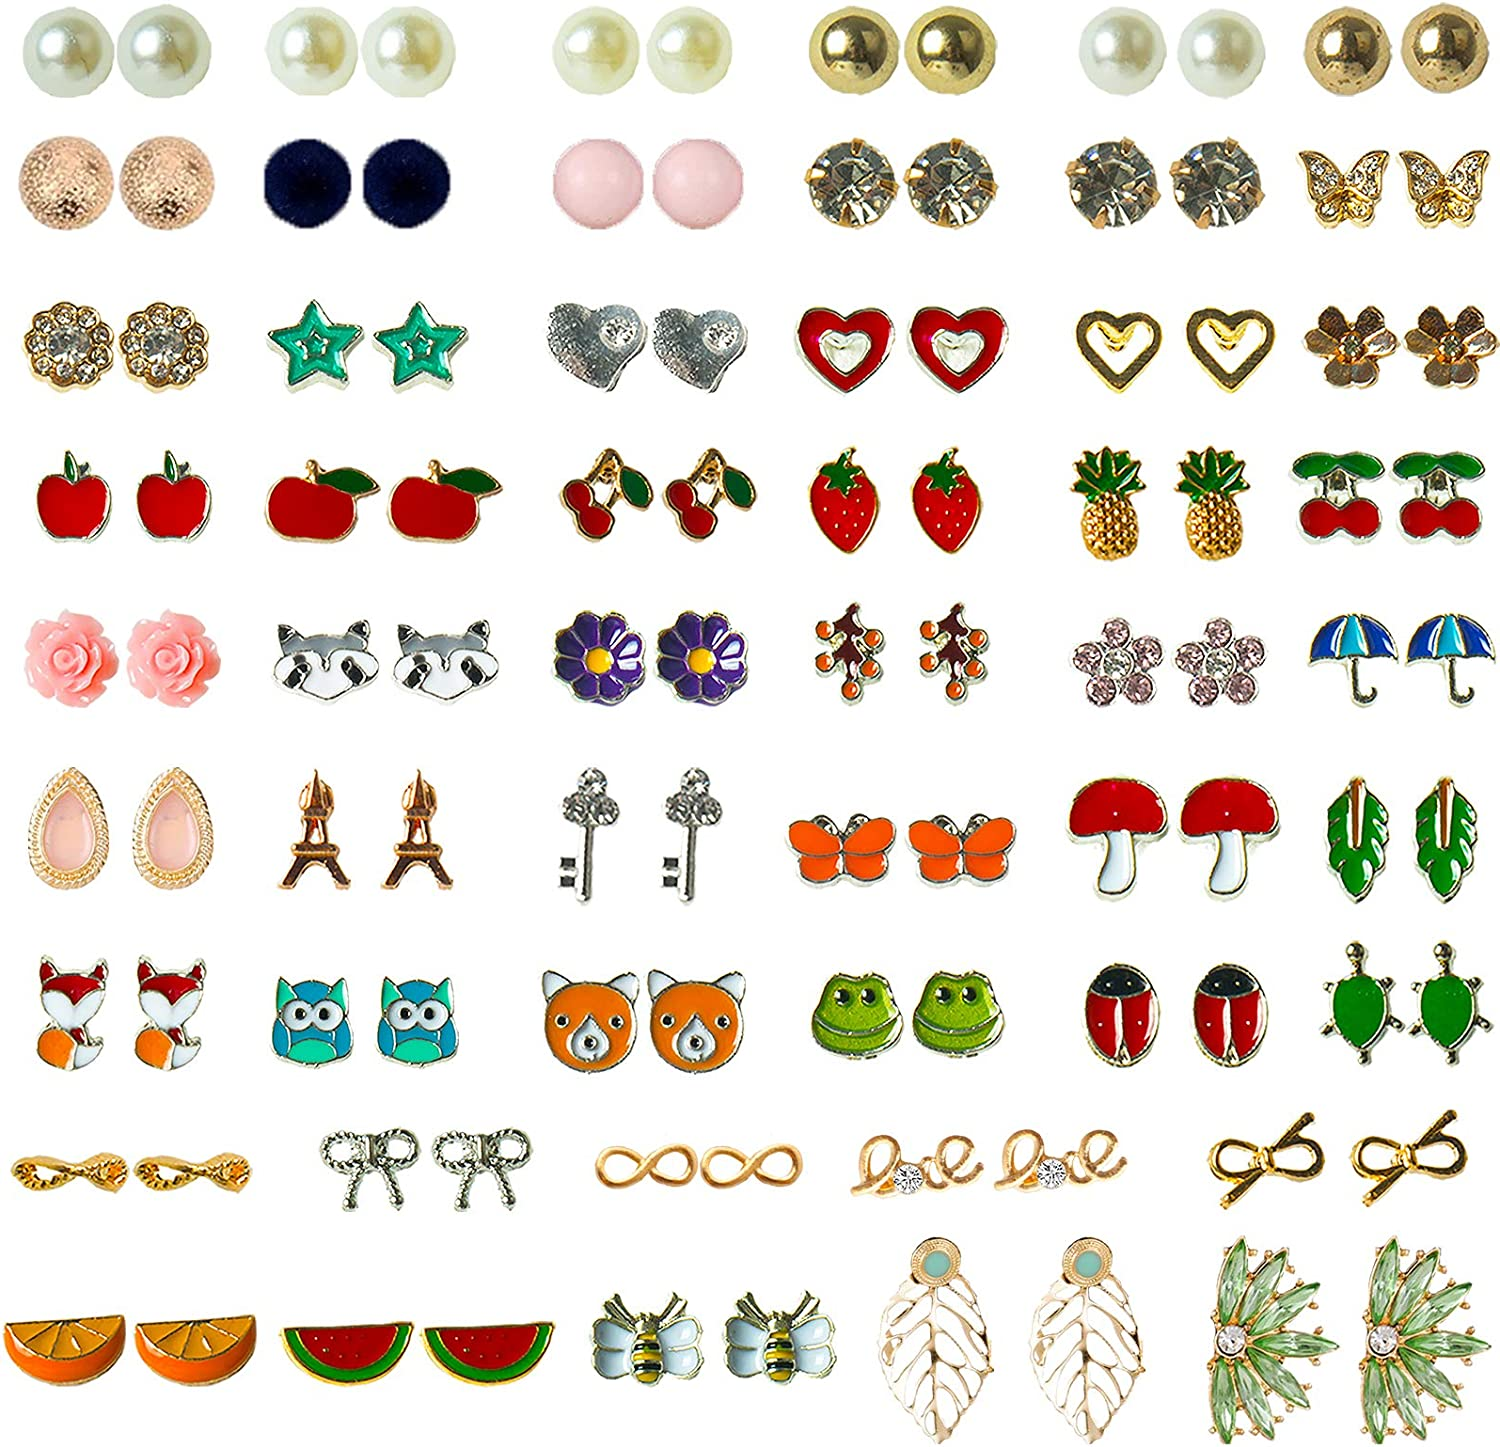 NEWITIN 52 Pairs Colorful Cute Stud Hypoallergenic Earrings Stainless Steel Earrings for Girls and Women